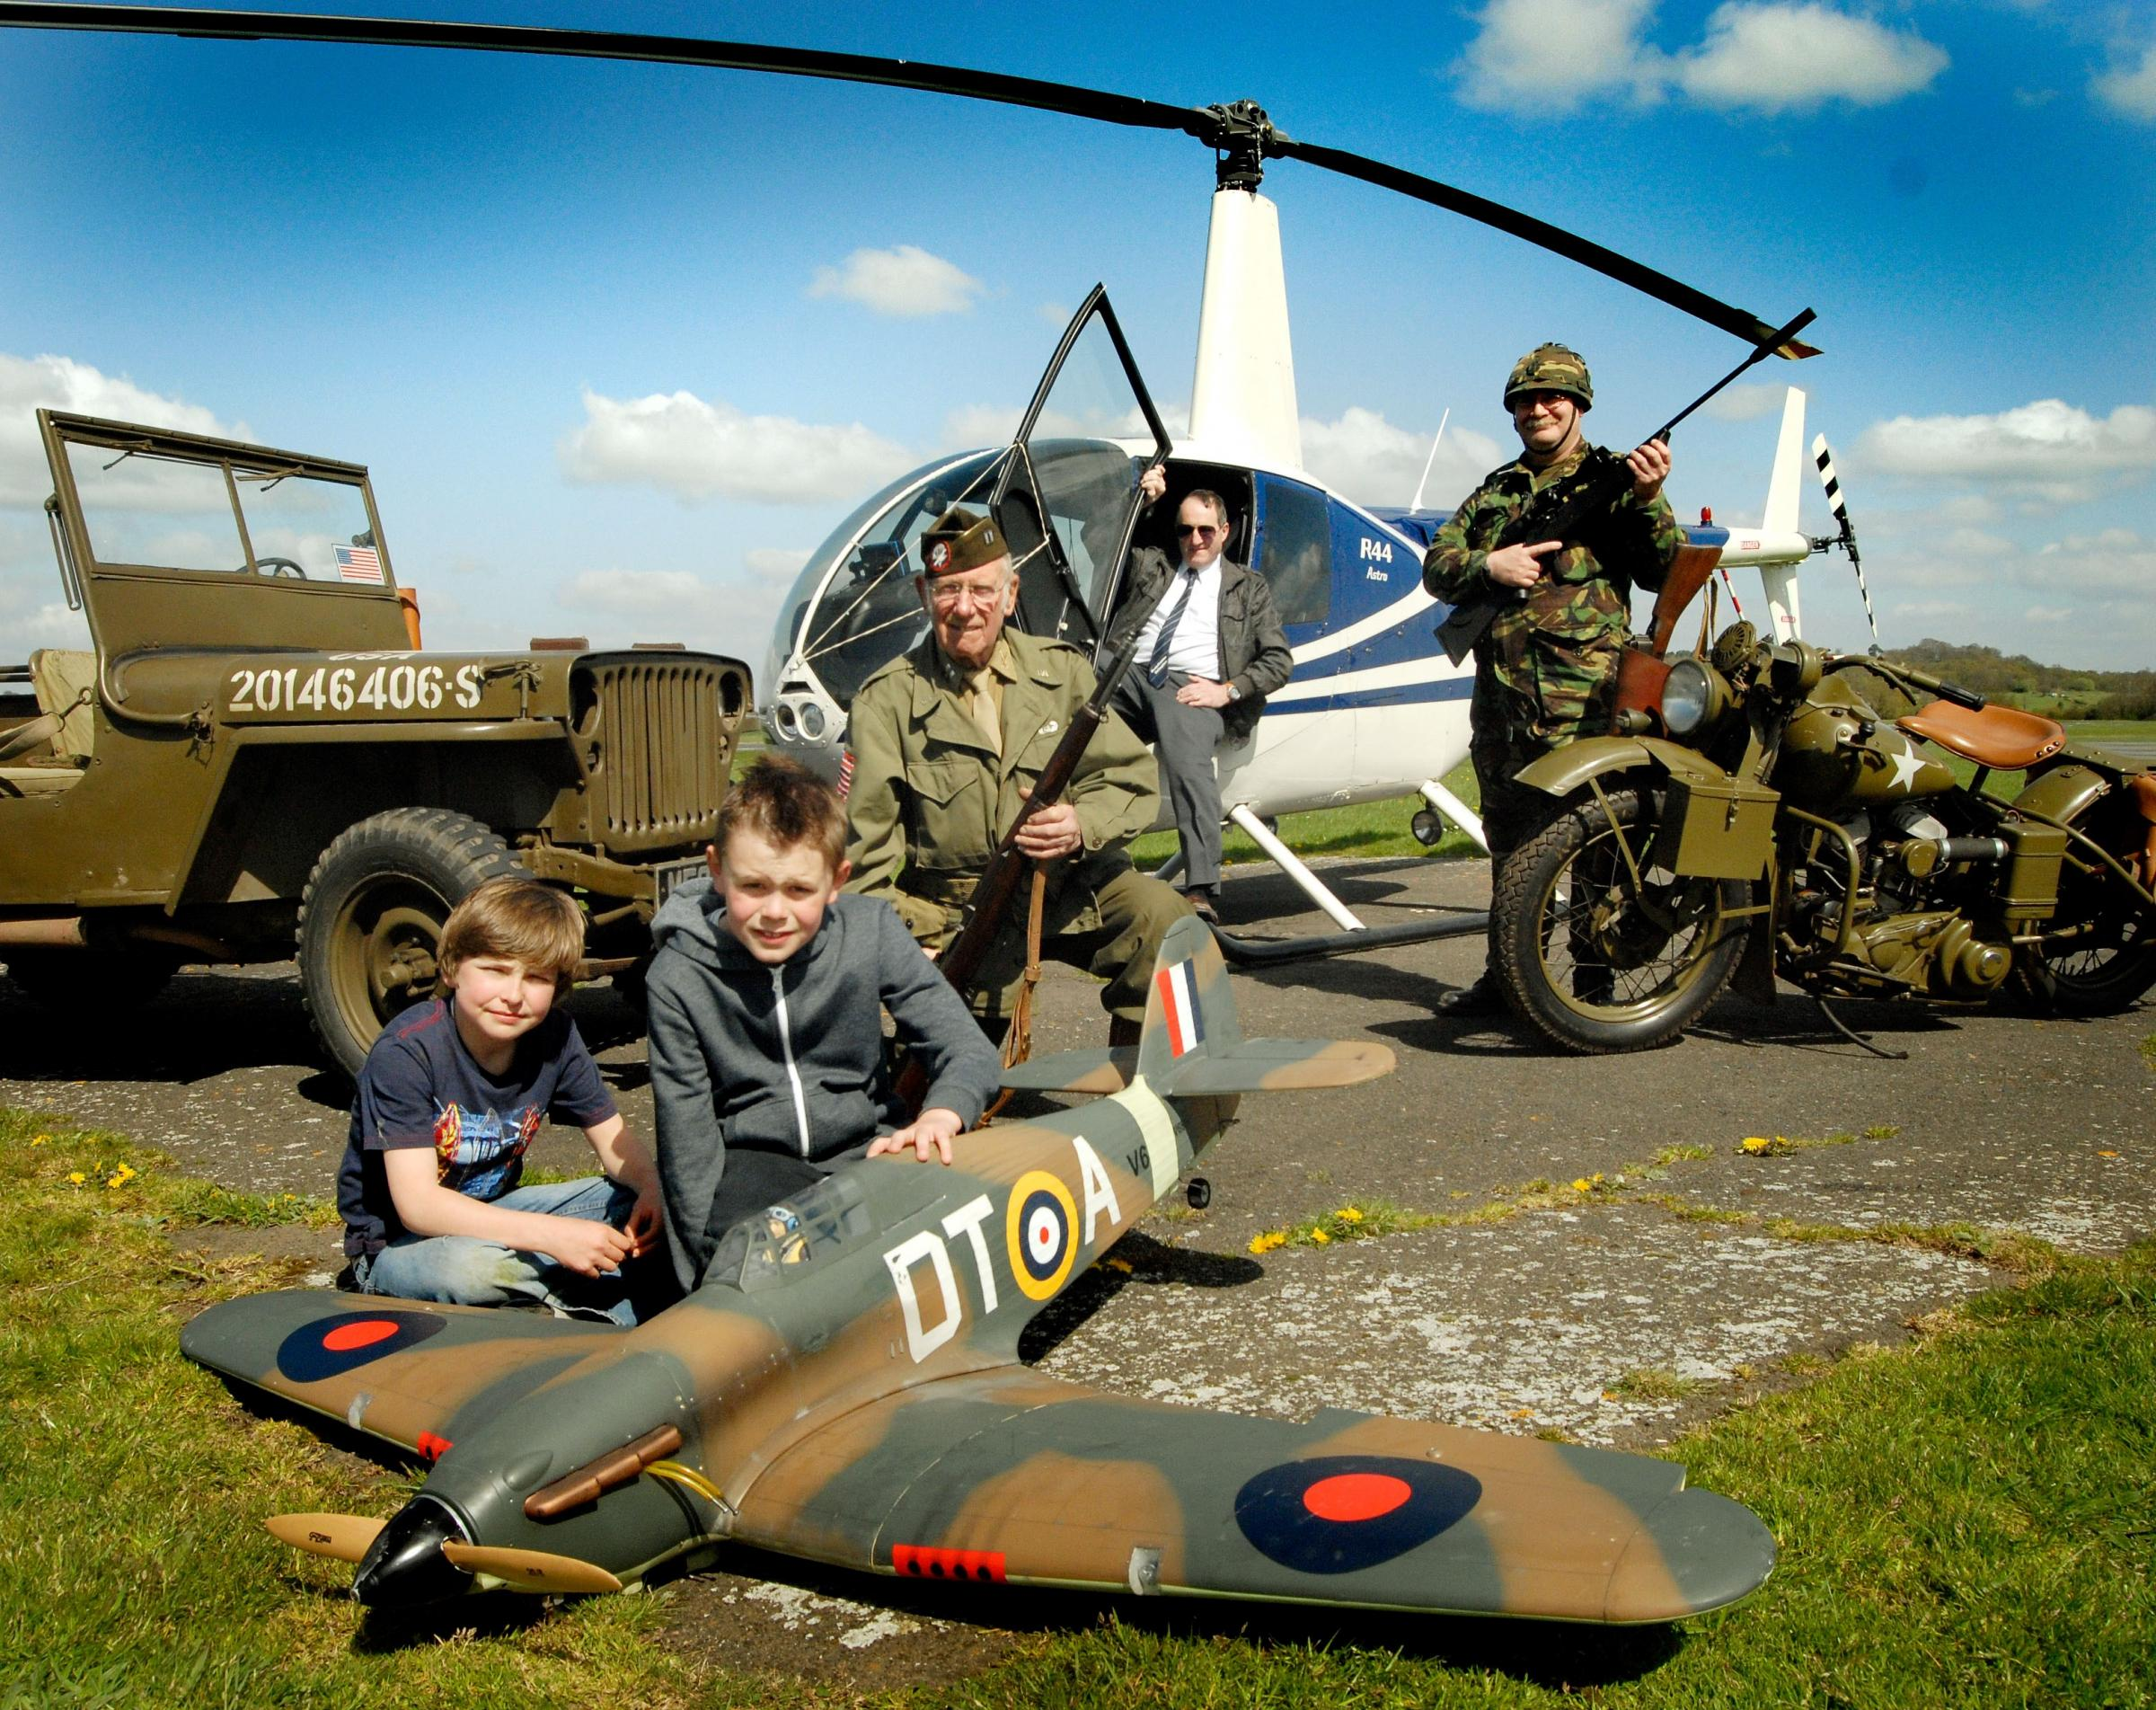 Josh Richards (10) and Henry Burton (9) with a model Hurricane fighter, John Vaughan, Roy Targonski and Richard Currinn. Buy this photo: 161426